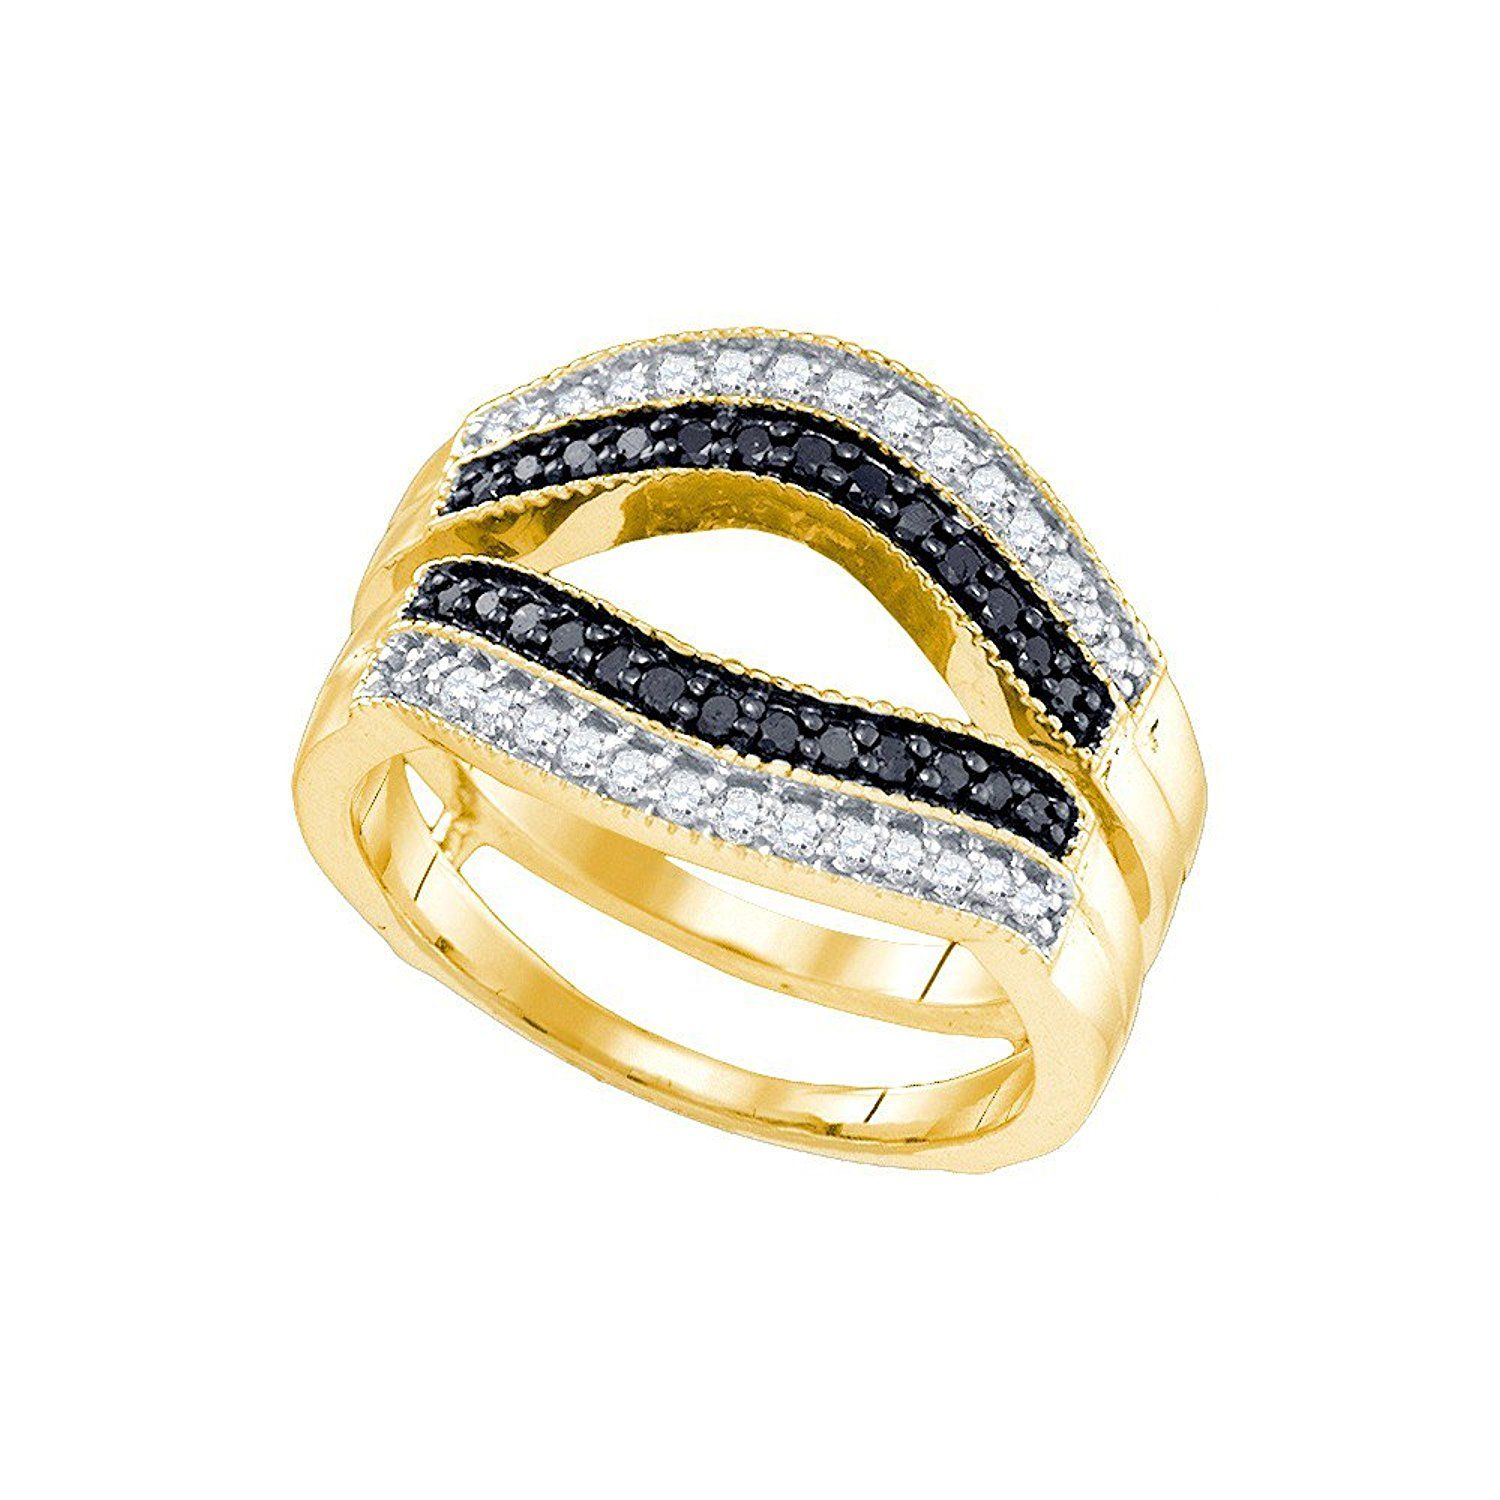 10kt Yellow Gold Womens Round Black Colored Diamond Ring